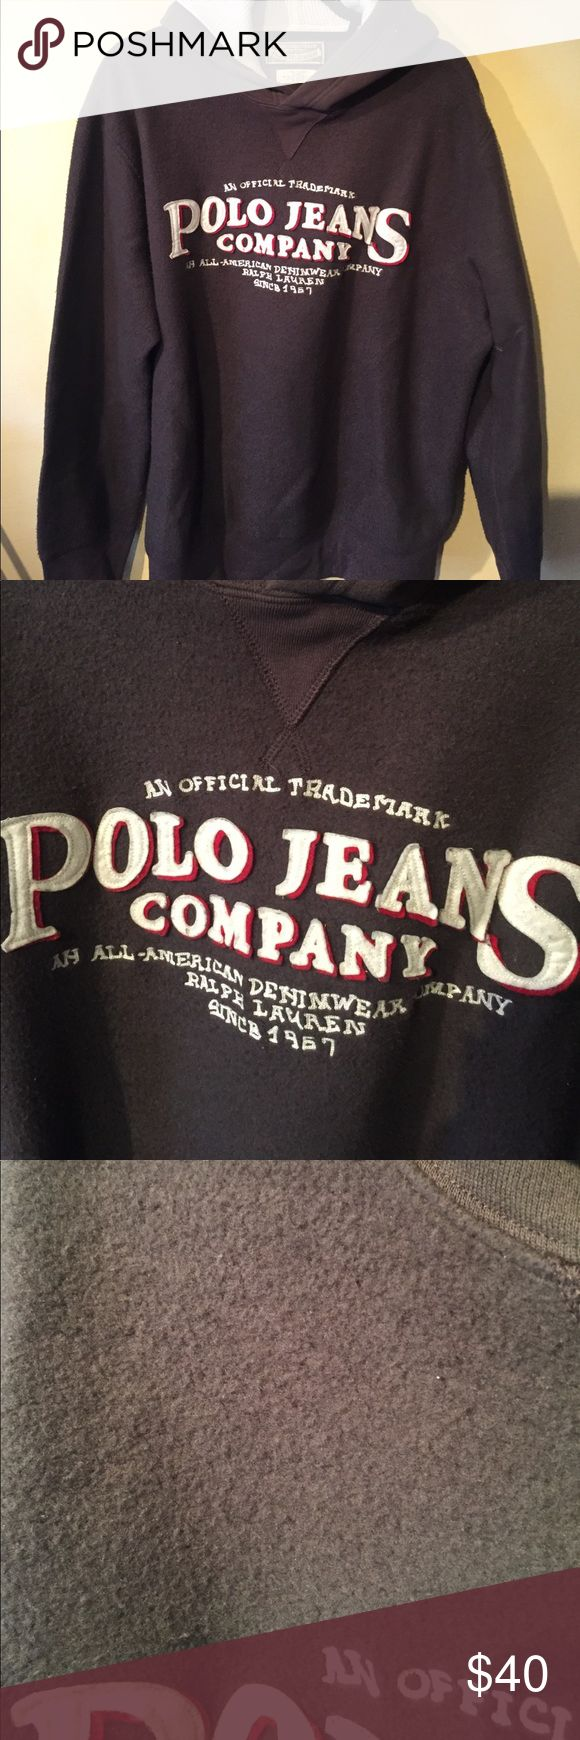 Polo jeans company sweatshirt Very soft fuzzy brown pullover sweatshirt with hood - polo jeans company logo on front - no pockets - hood has waffle material lining Polo by Ralph Lauren Shirts Sweatshirts & Hoodies